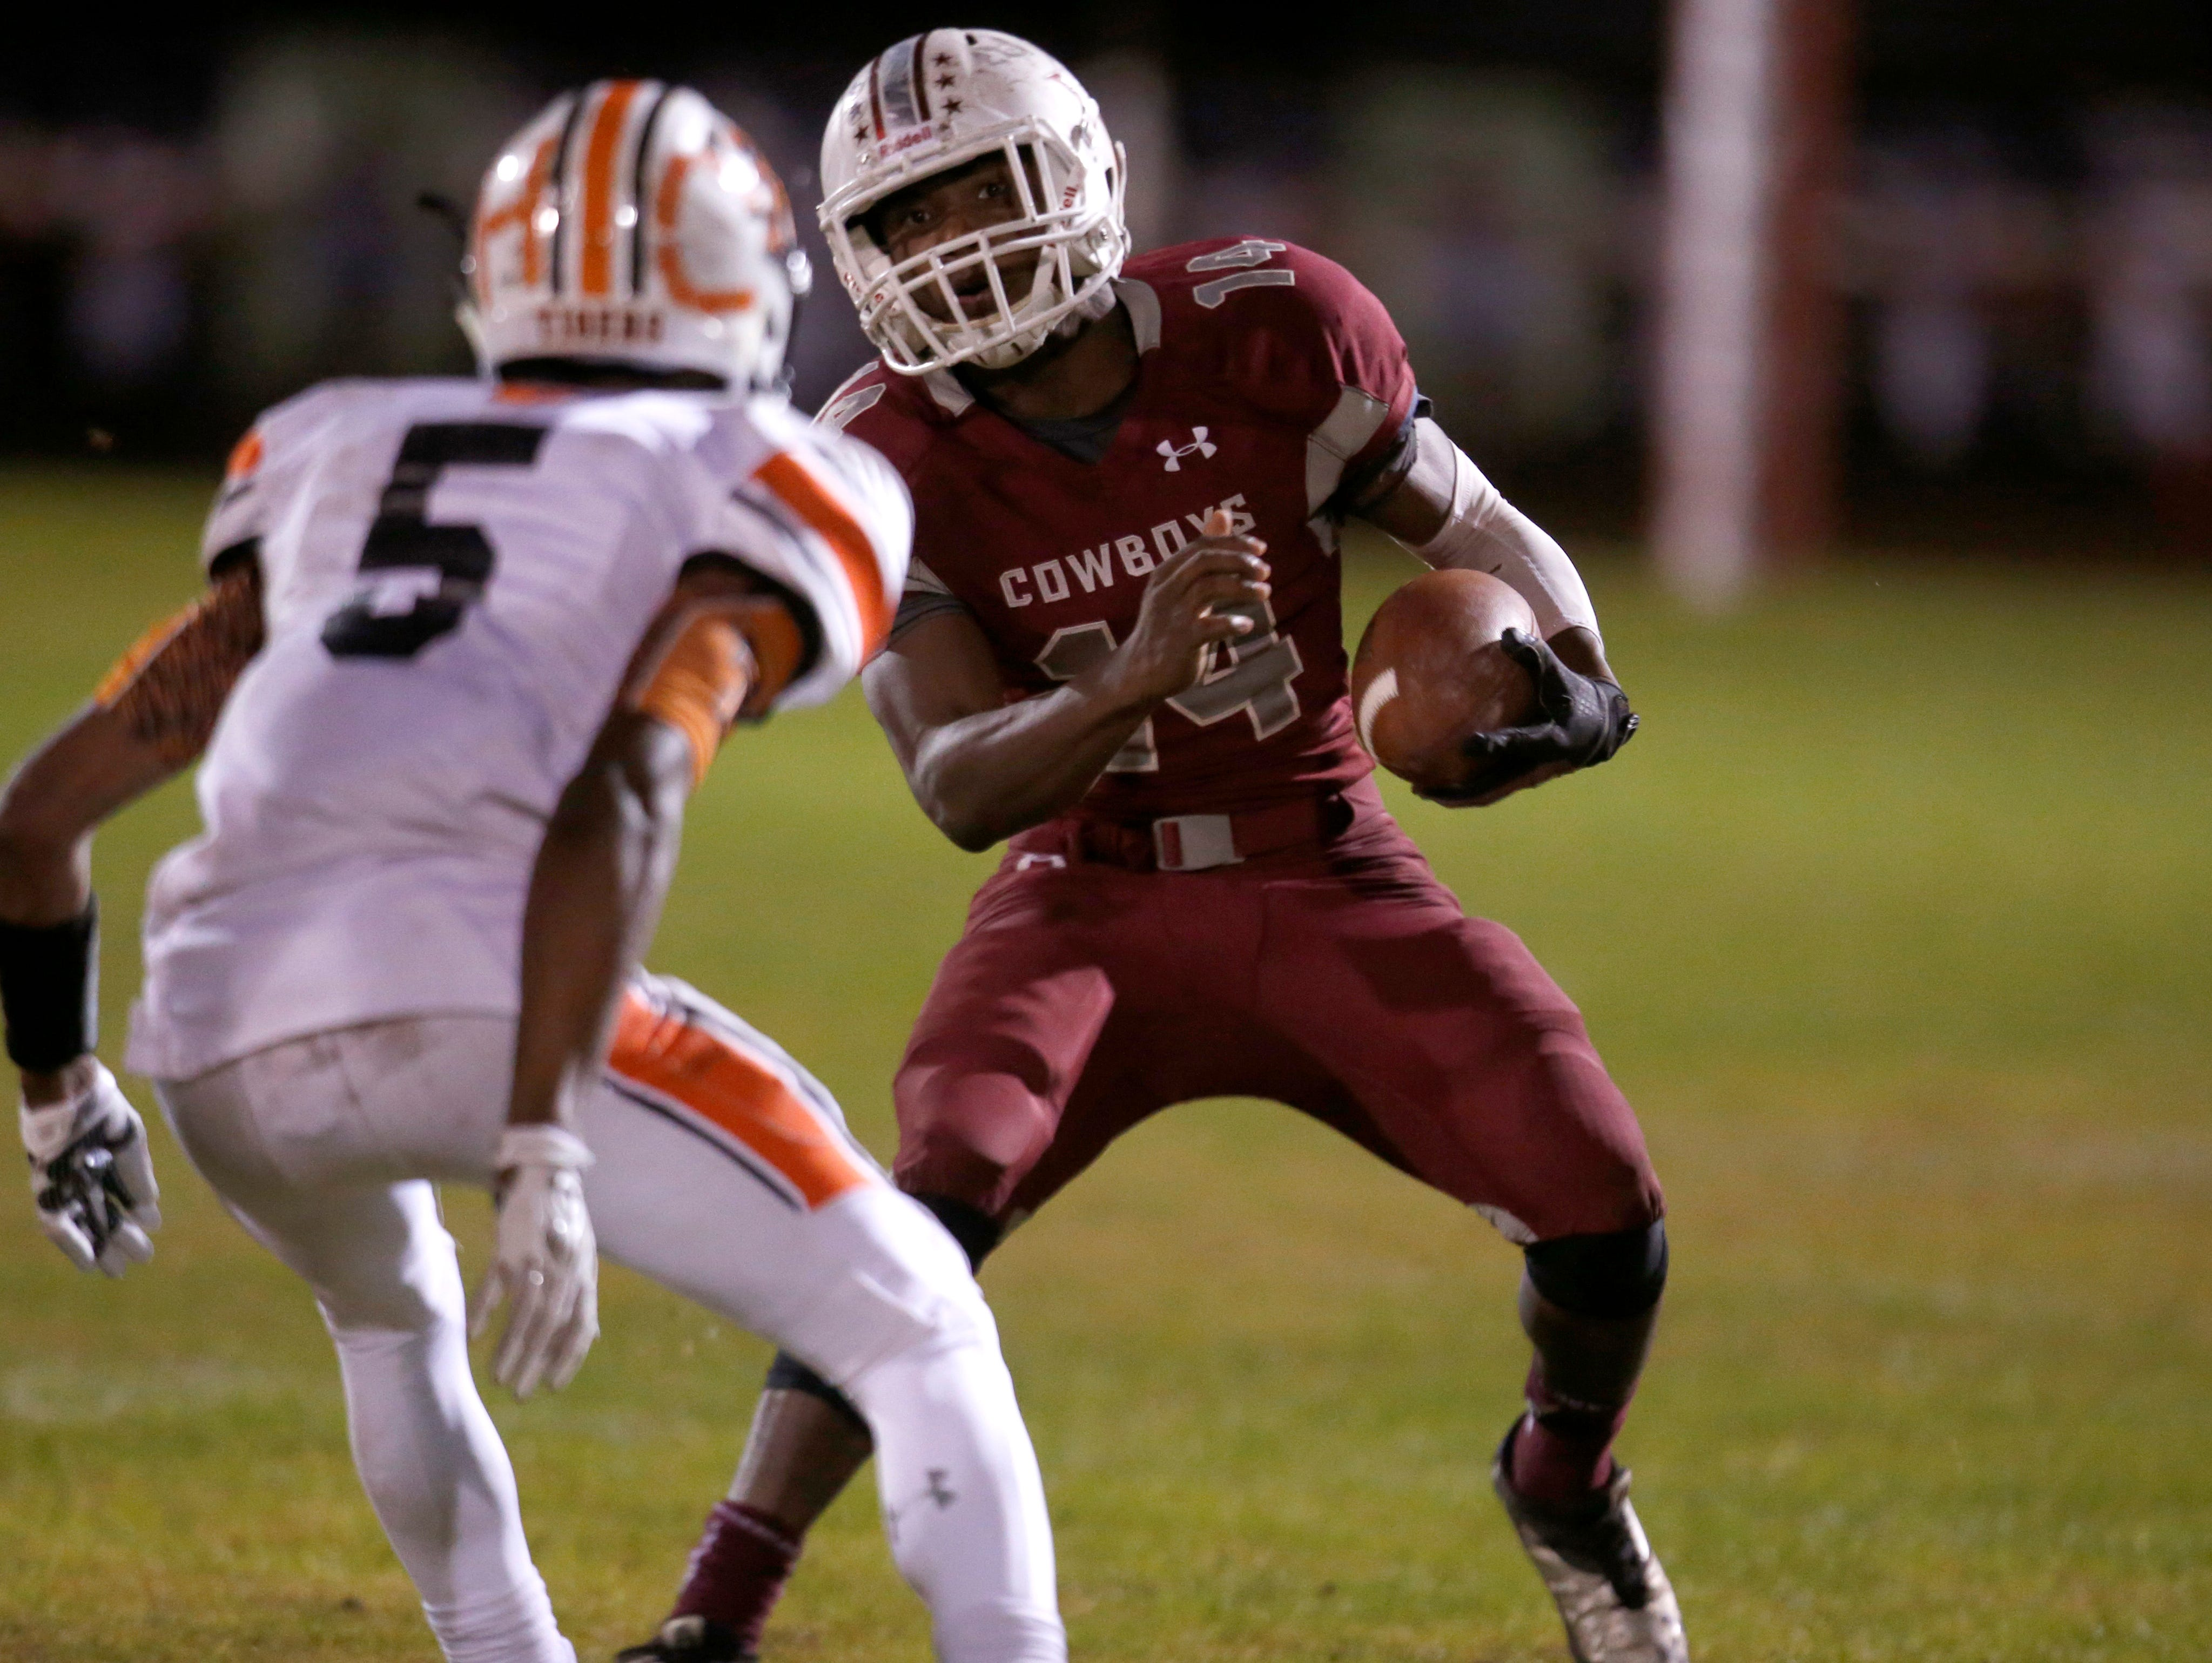 Madison County's Kentwan Daniels tries to get past Trenton defender Hamp Cheevers during their playoff game on Friday.